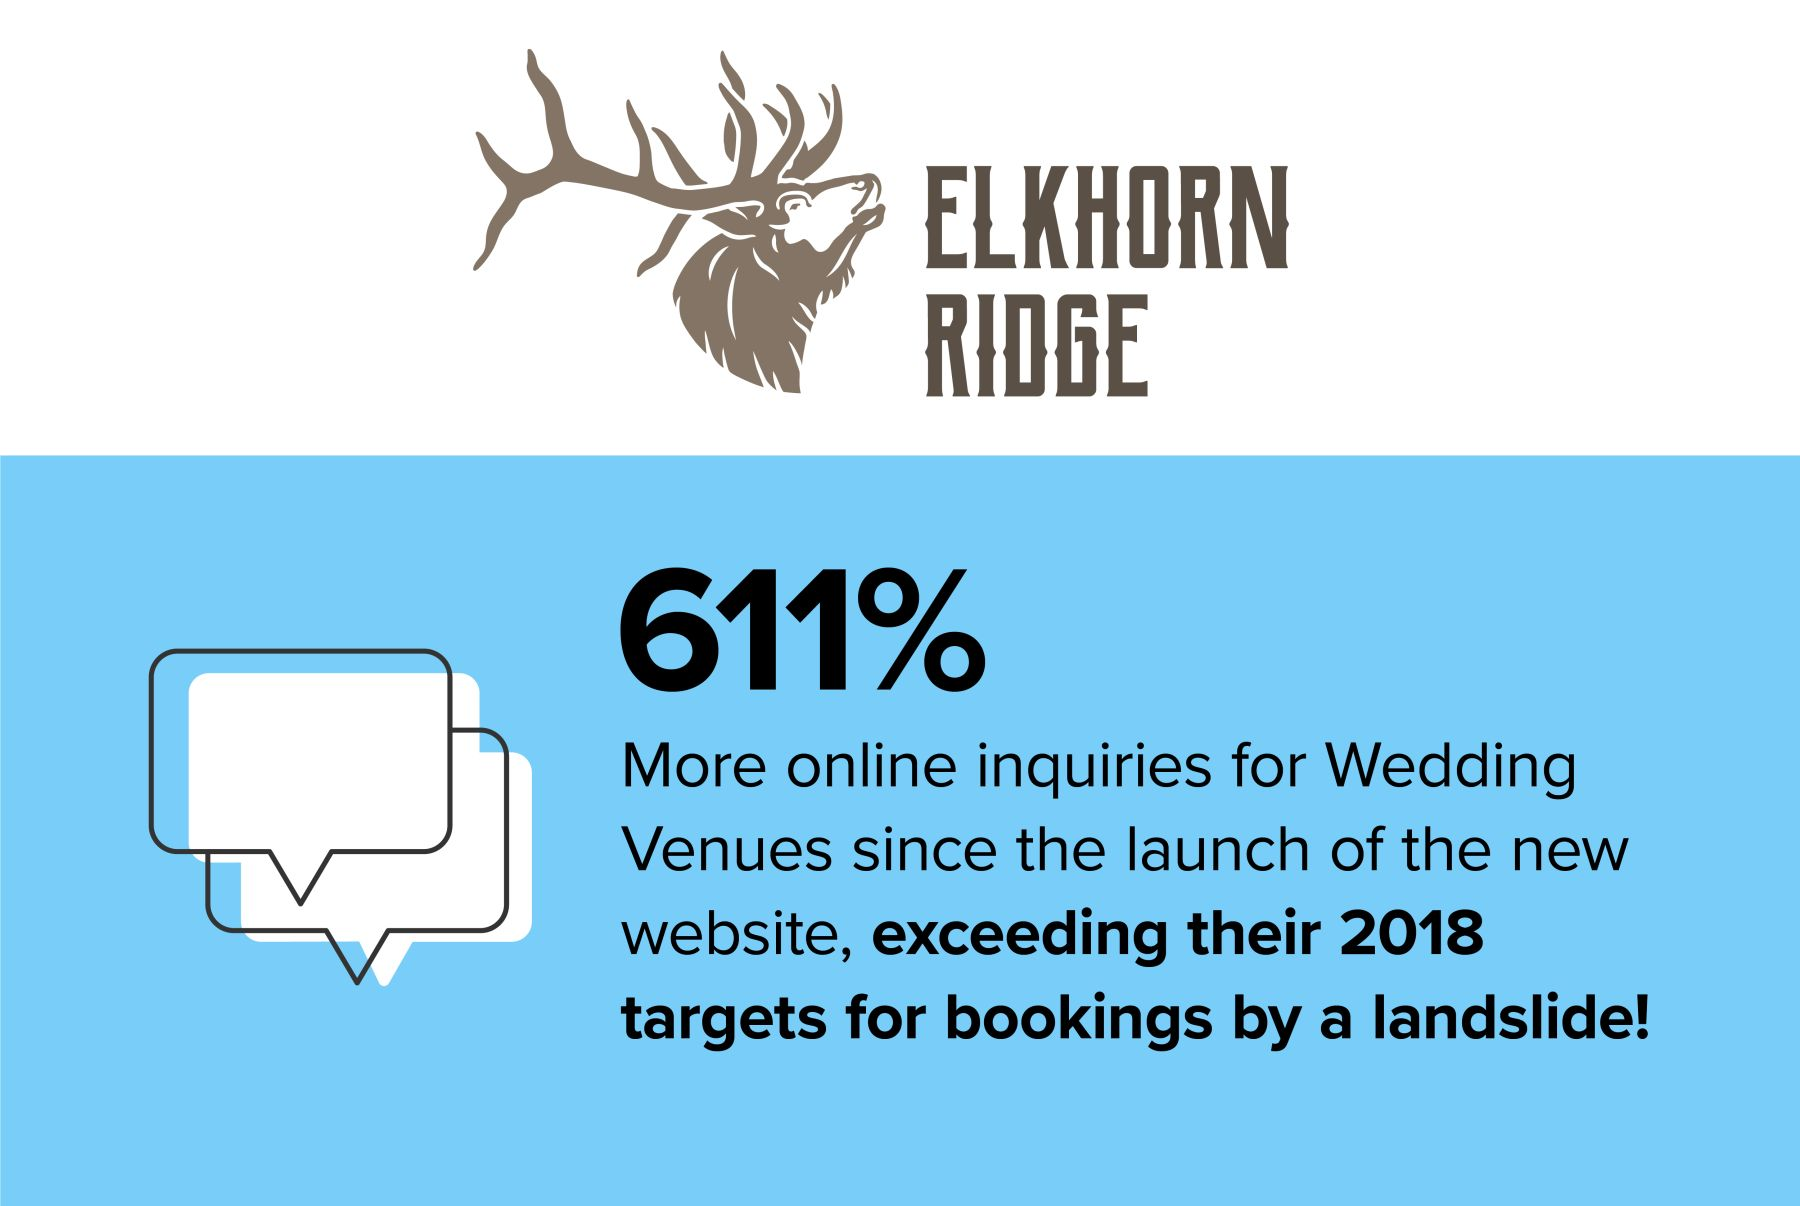 Elkhorn Ridge celebrates achieving 611% more online inquiries for Wedding Venues since the launch of the new website, exceeding their 2018 targets for bookings by a landslide!